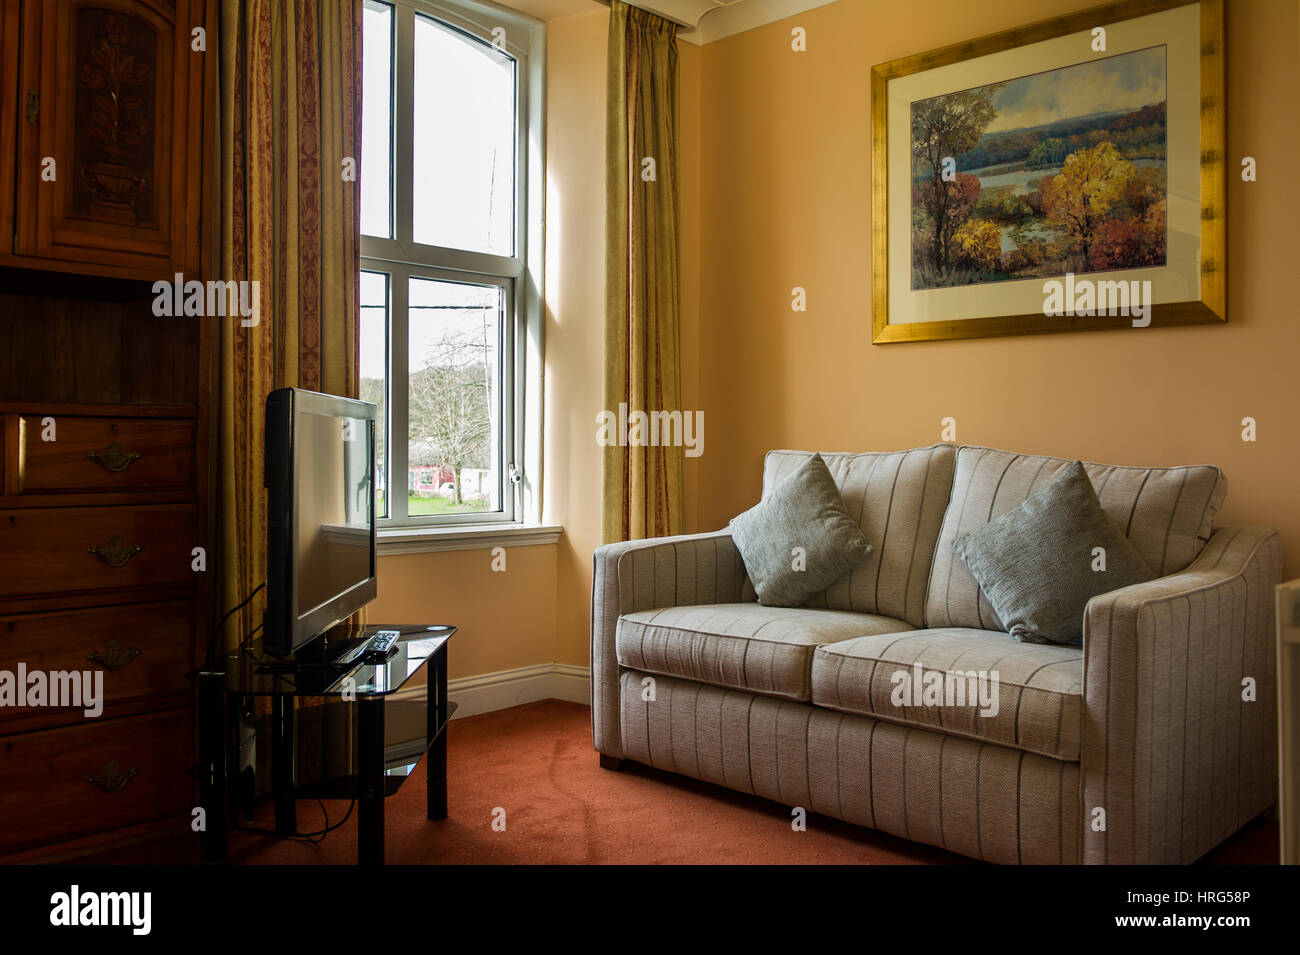 Corner seating stock photos corner seating stock images for Salotto con tv